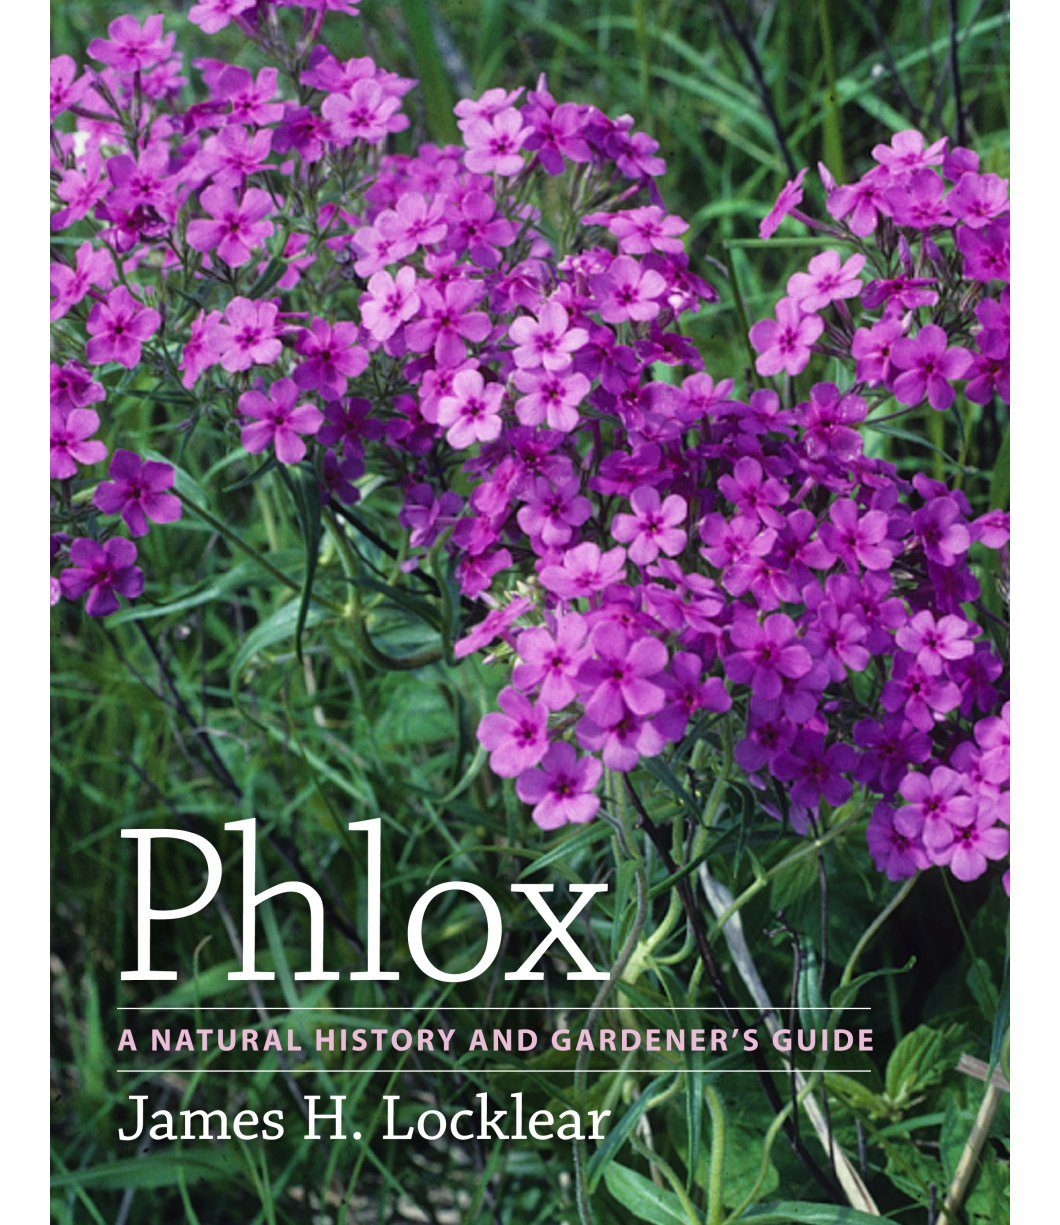 Phlox: A Natural History and Gardener's Guide